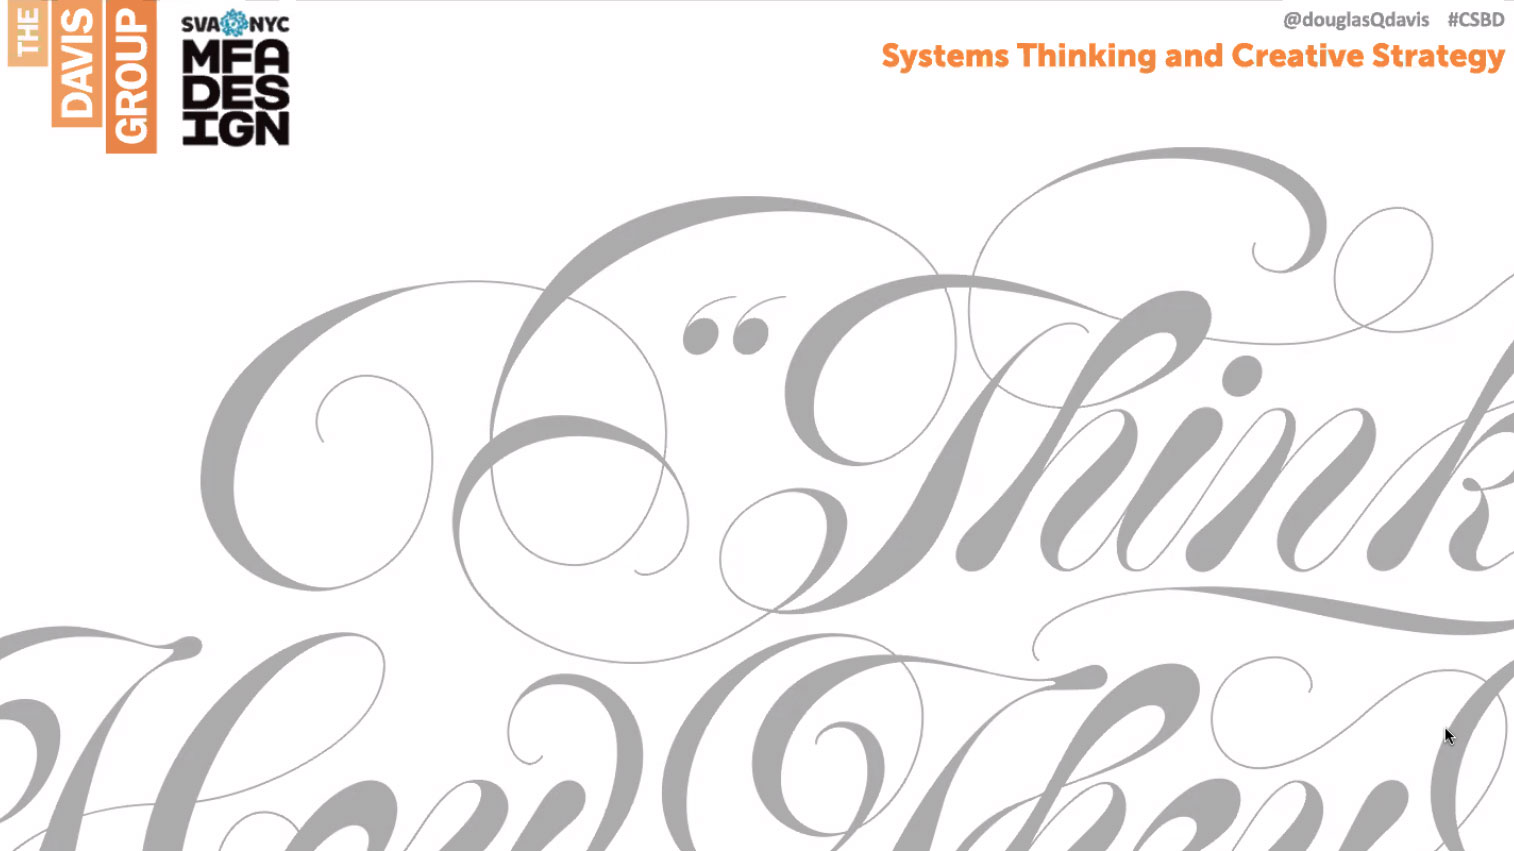 Douglas Davis systems thinking and creative strategy